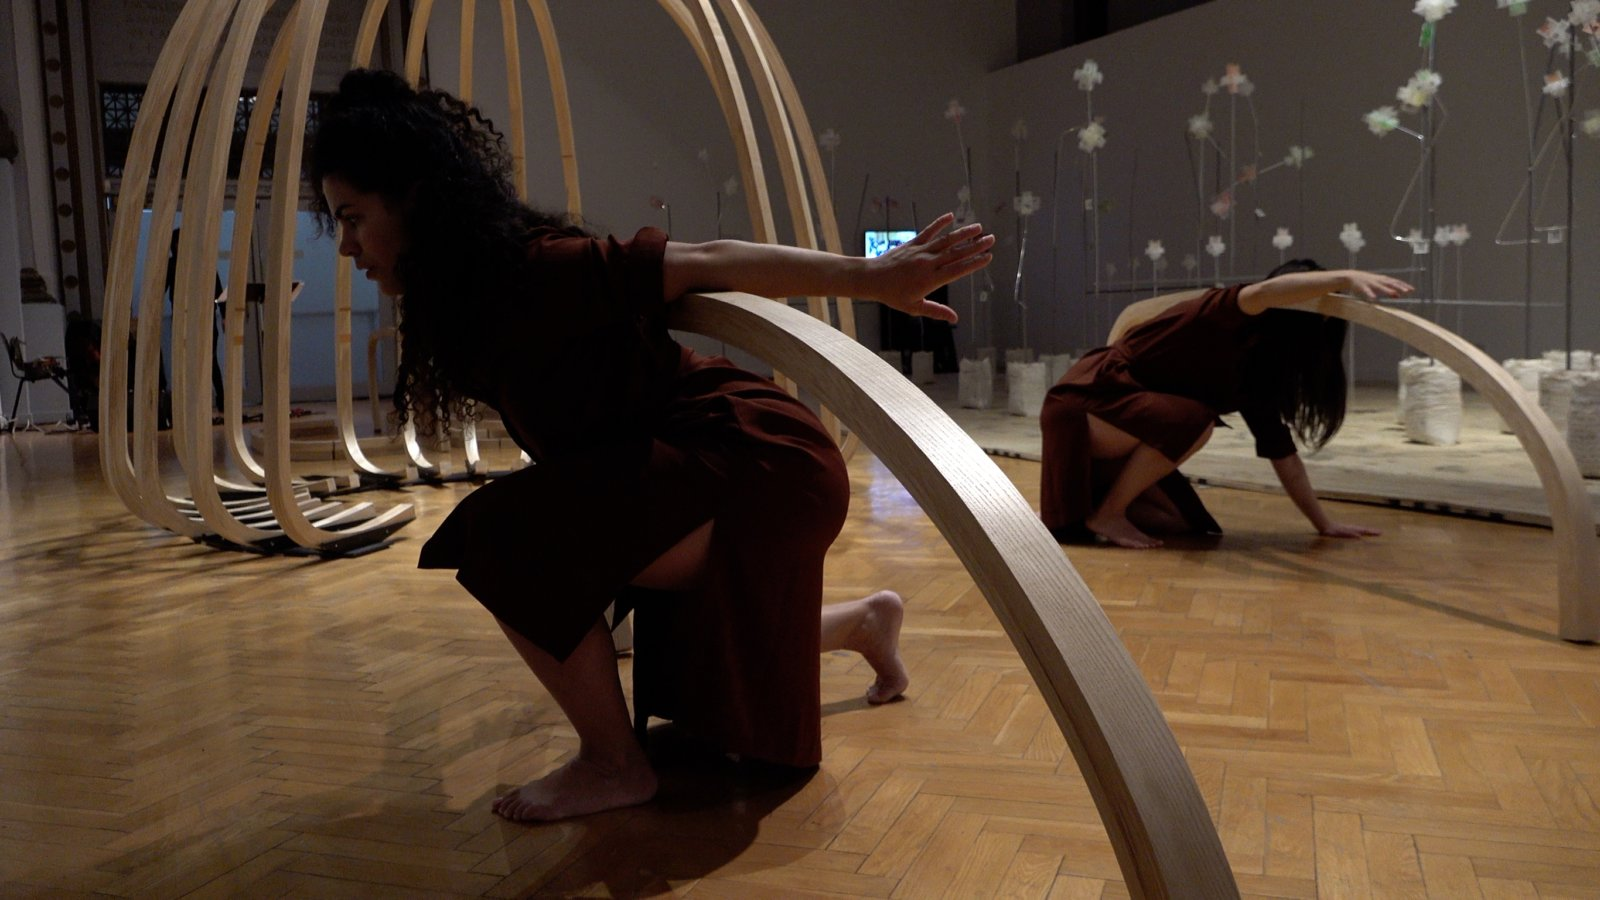 Tanya Lukin Linklater, A song, a felt structure: We are putting ourselves back together again, 2019, site-specific performance. Performance documentation, ...and other such stories, Chicago Architecture Biennial, USA, 2019